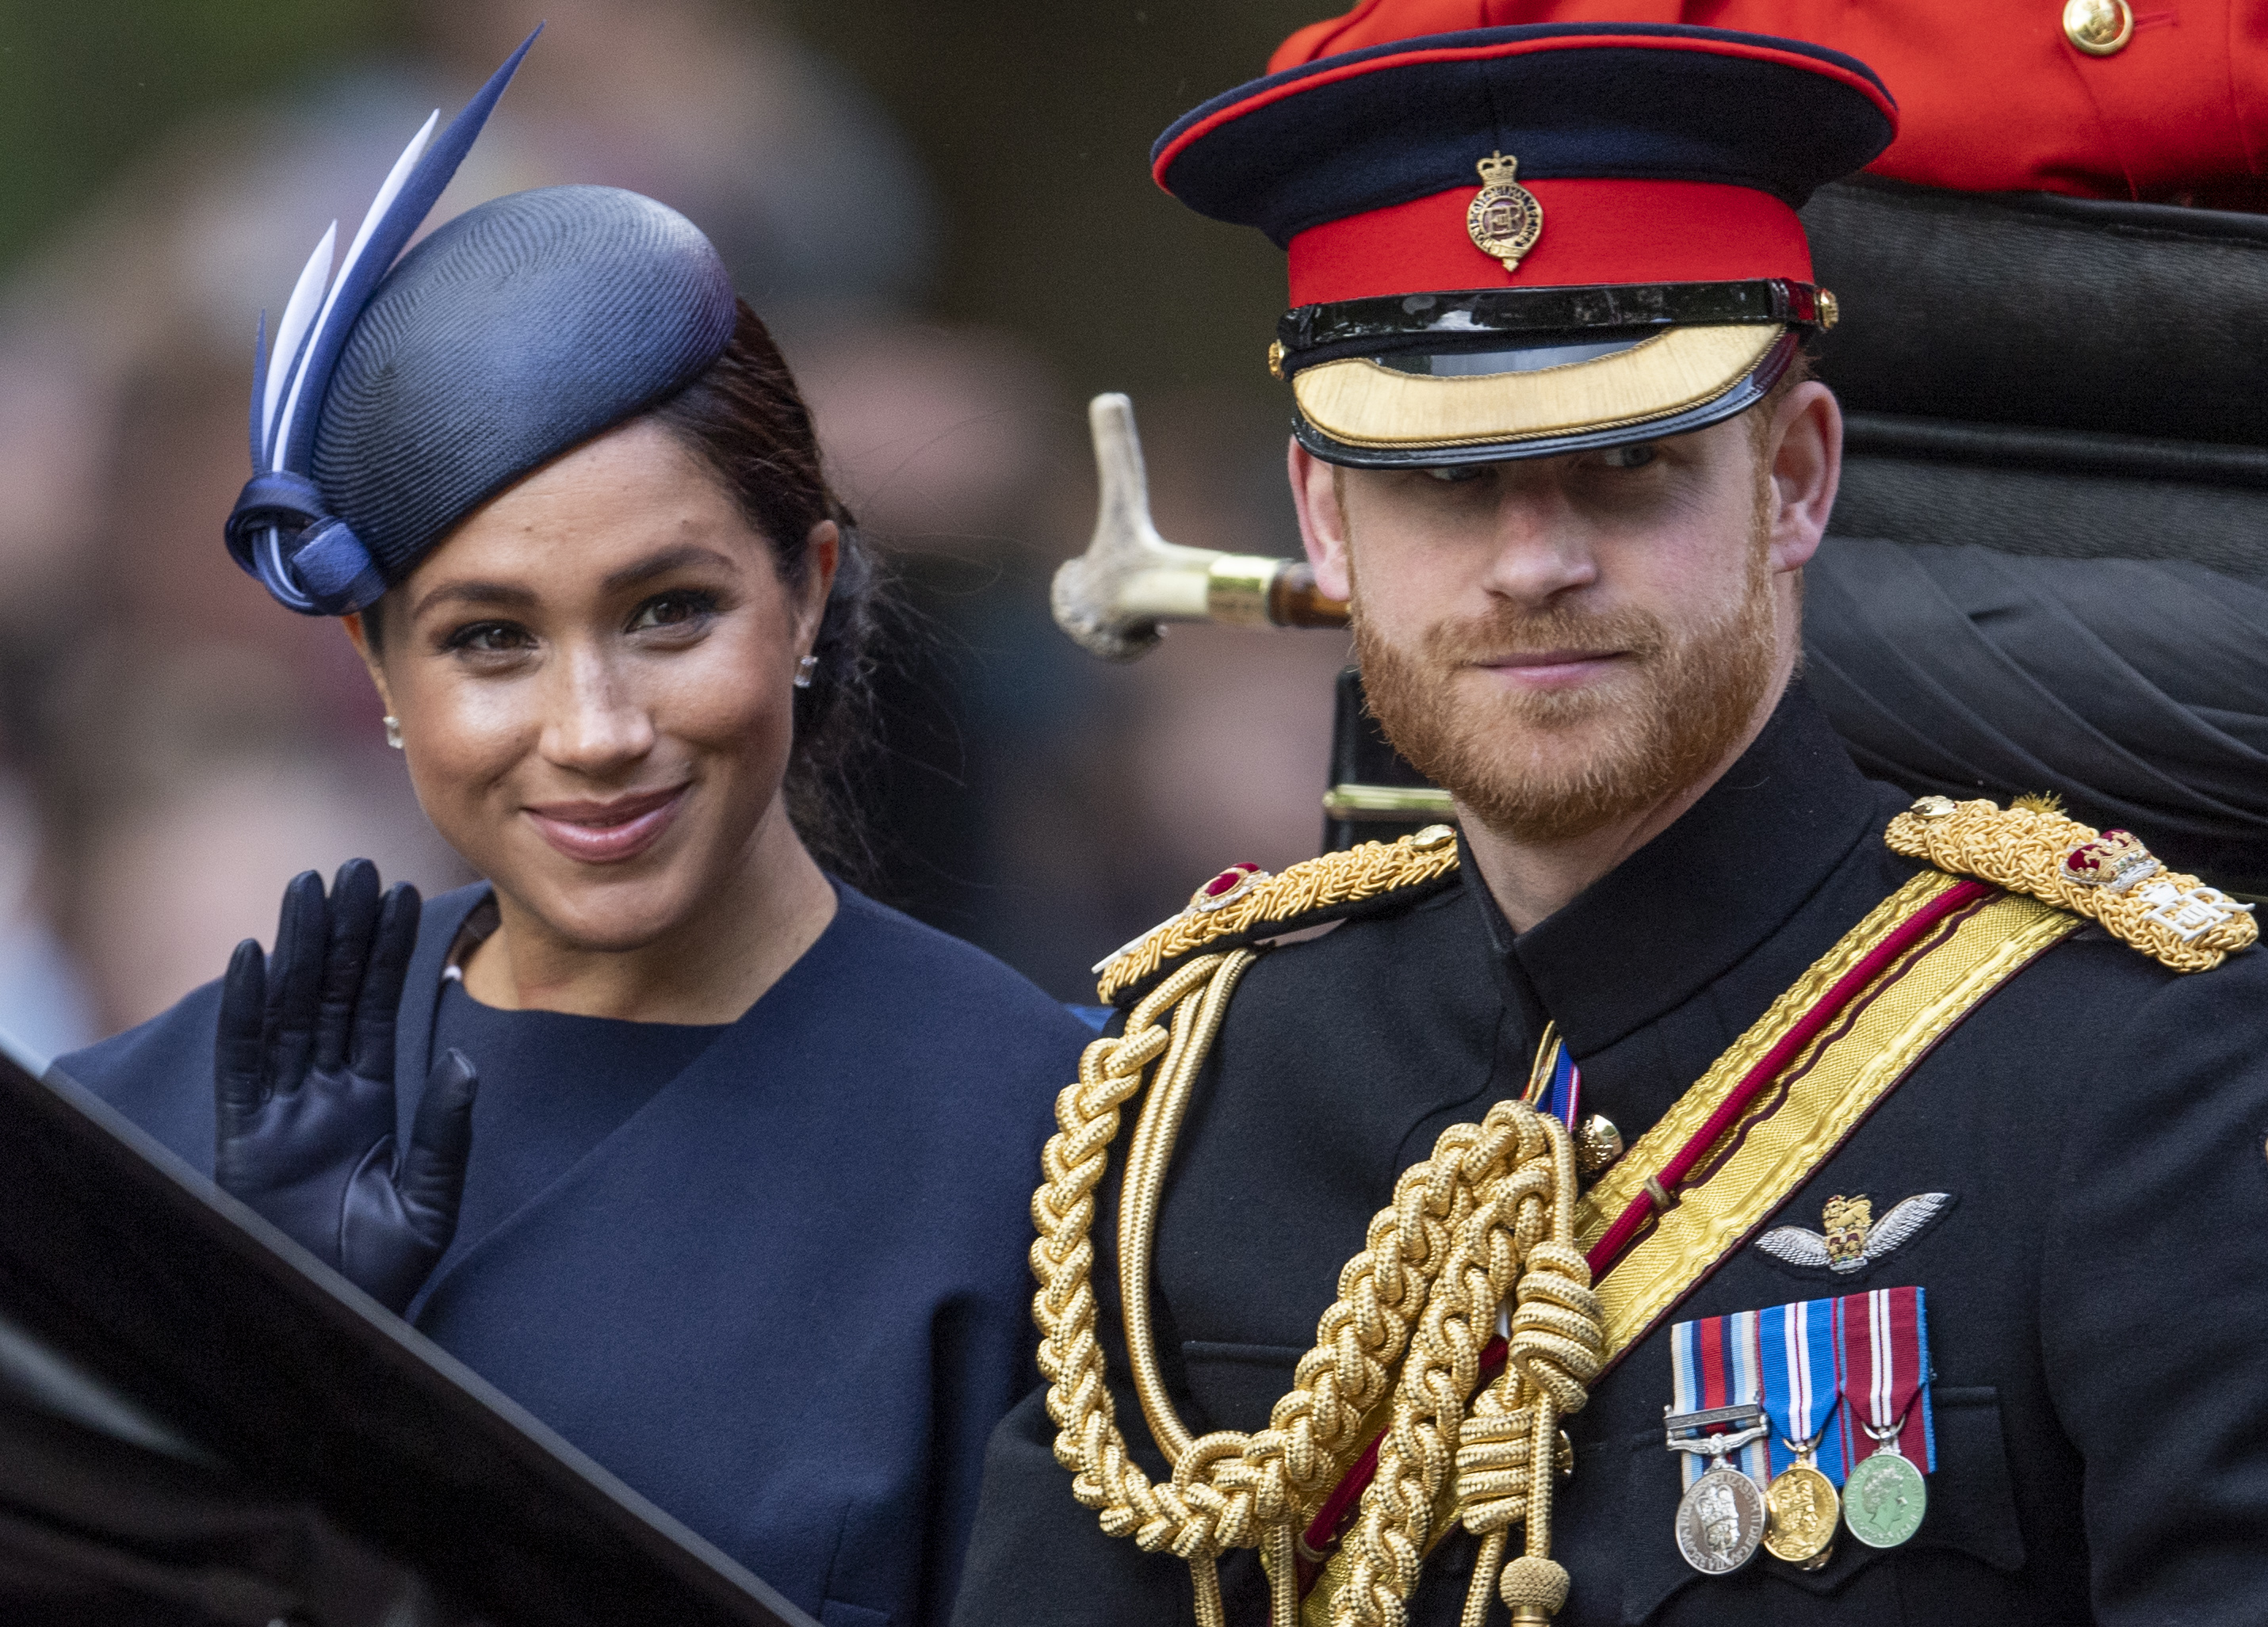 Harry & Meghan's place in the royal hierarchy: who will they now bow and curtsey to?